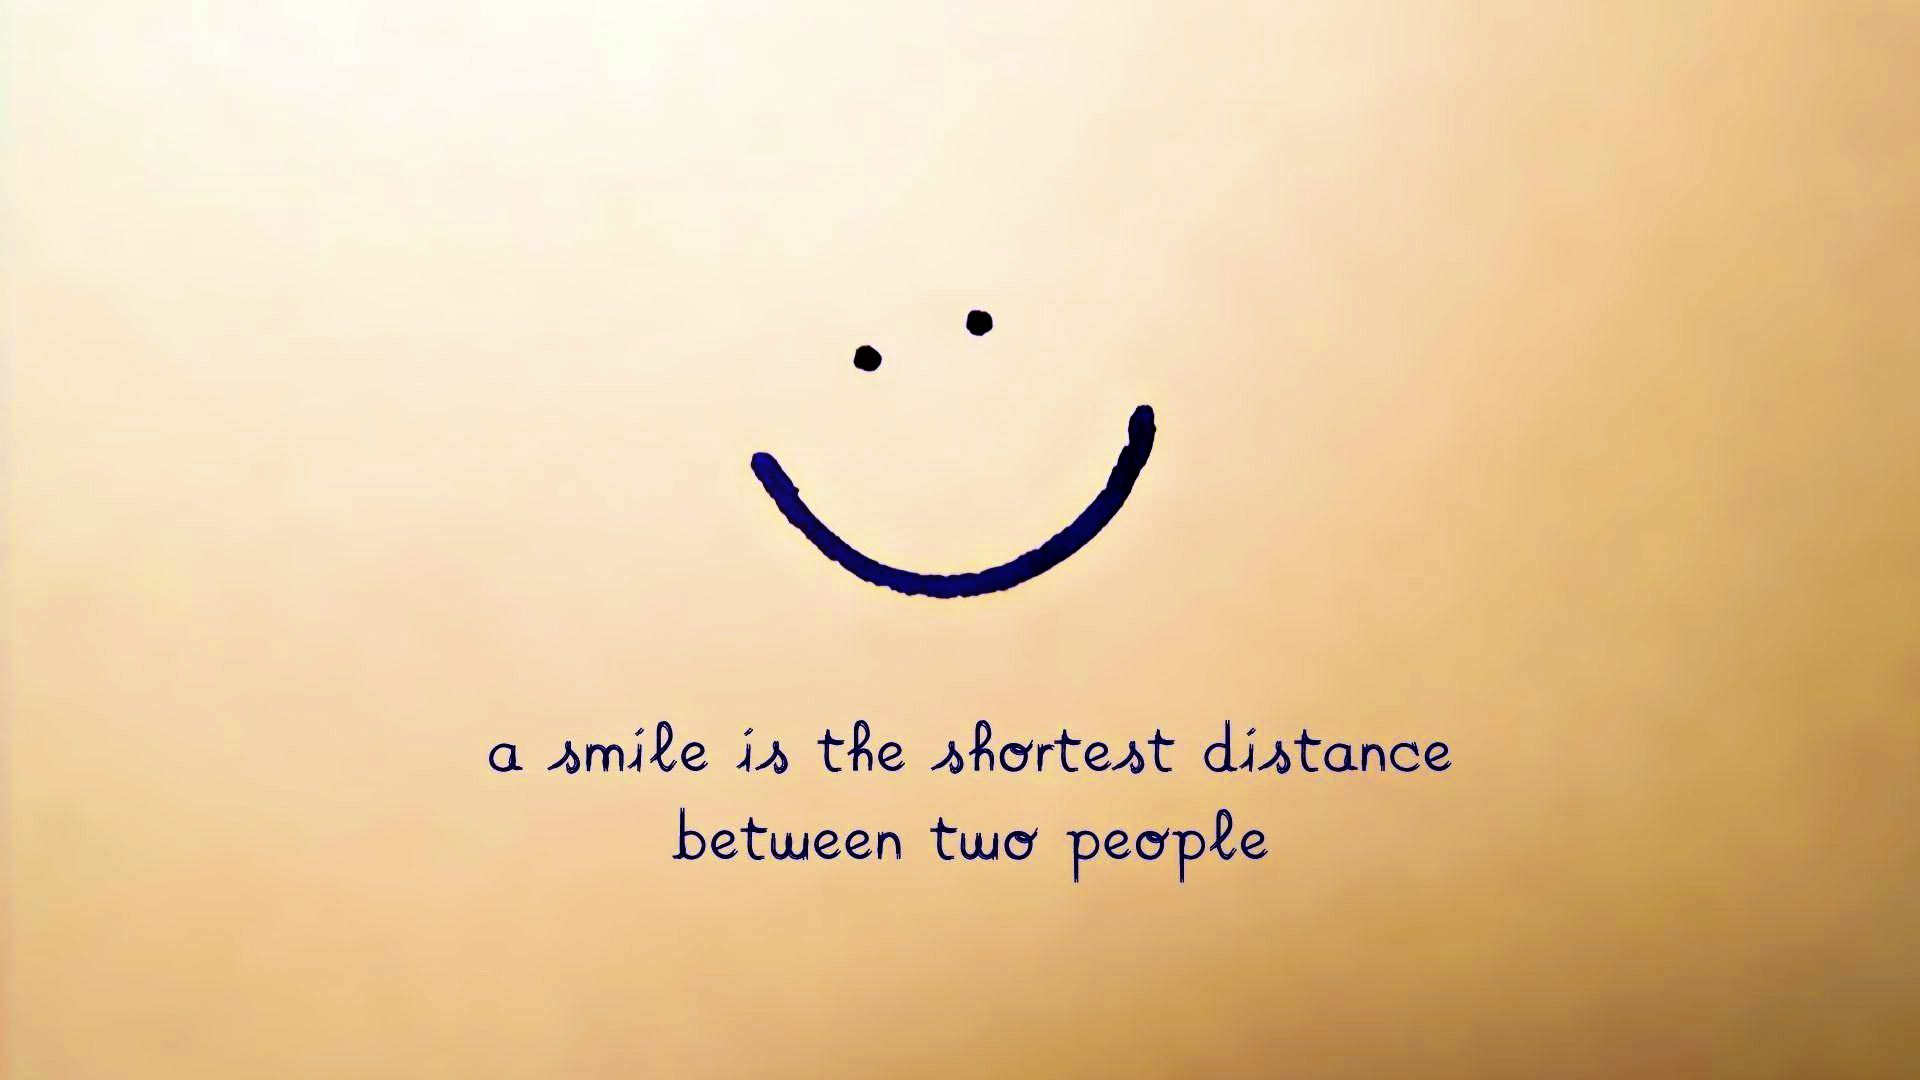 So I Have Heard Smile And The World Will Smile At You Since Childhood Otherwise Referred To As Law Of Best Smile Quotes Smile Quotes Smile Quotes Beautiful